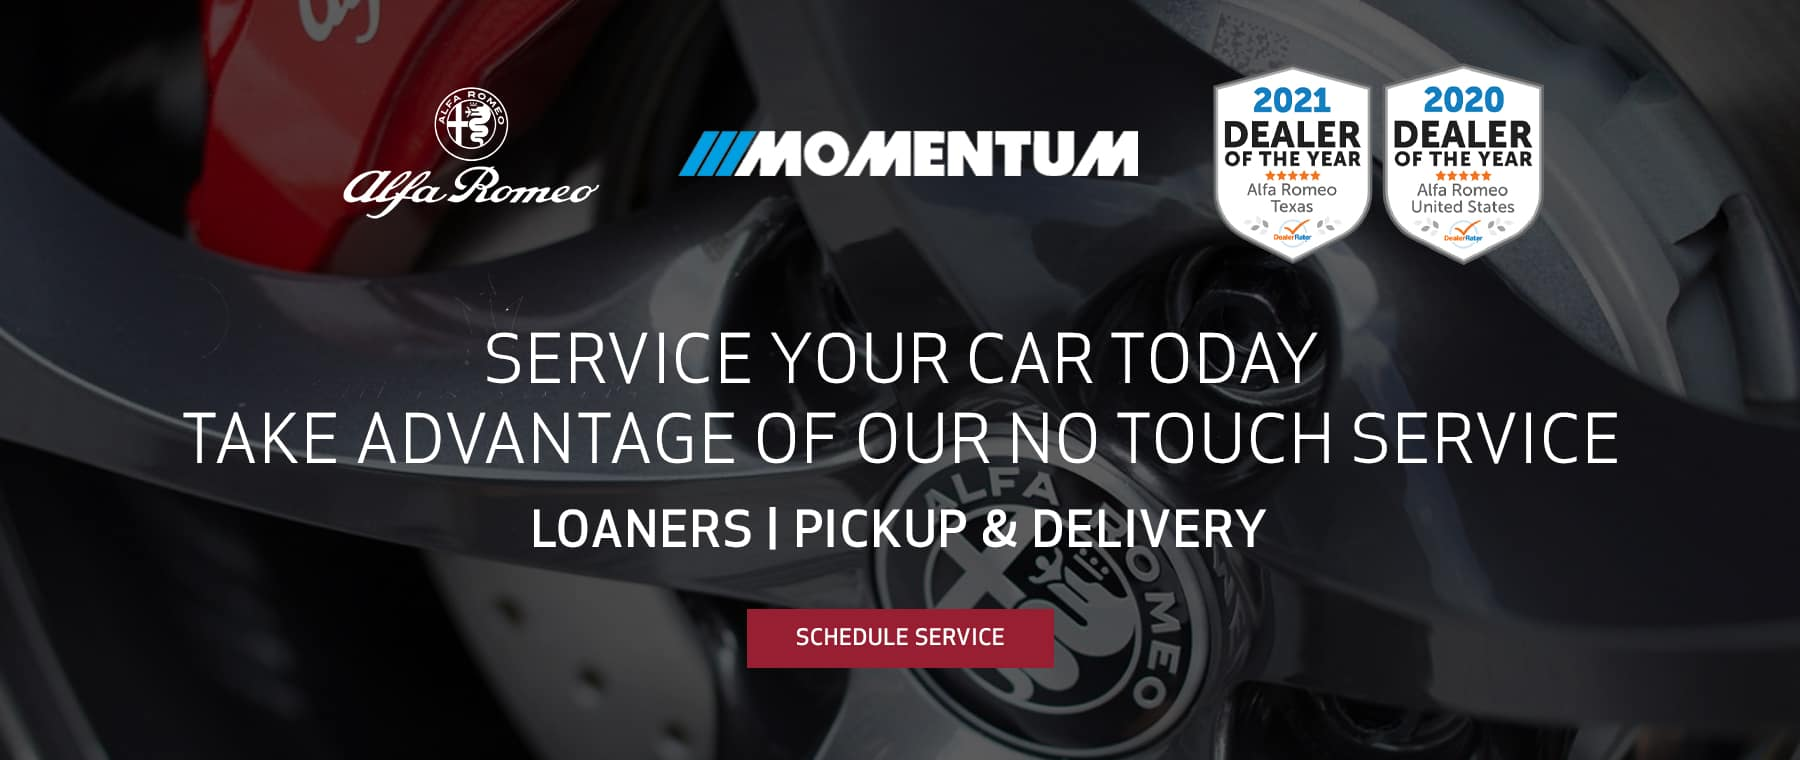 Service your car today! Pick up and delivery